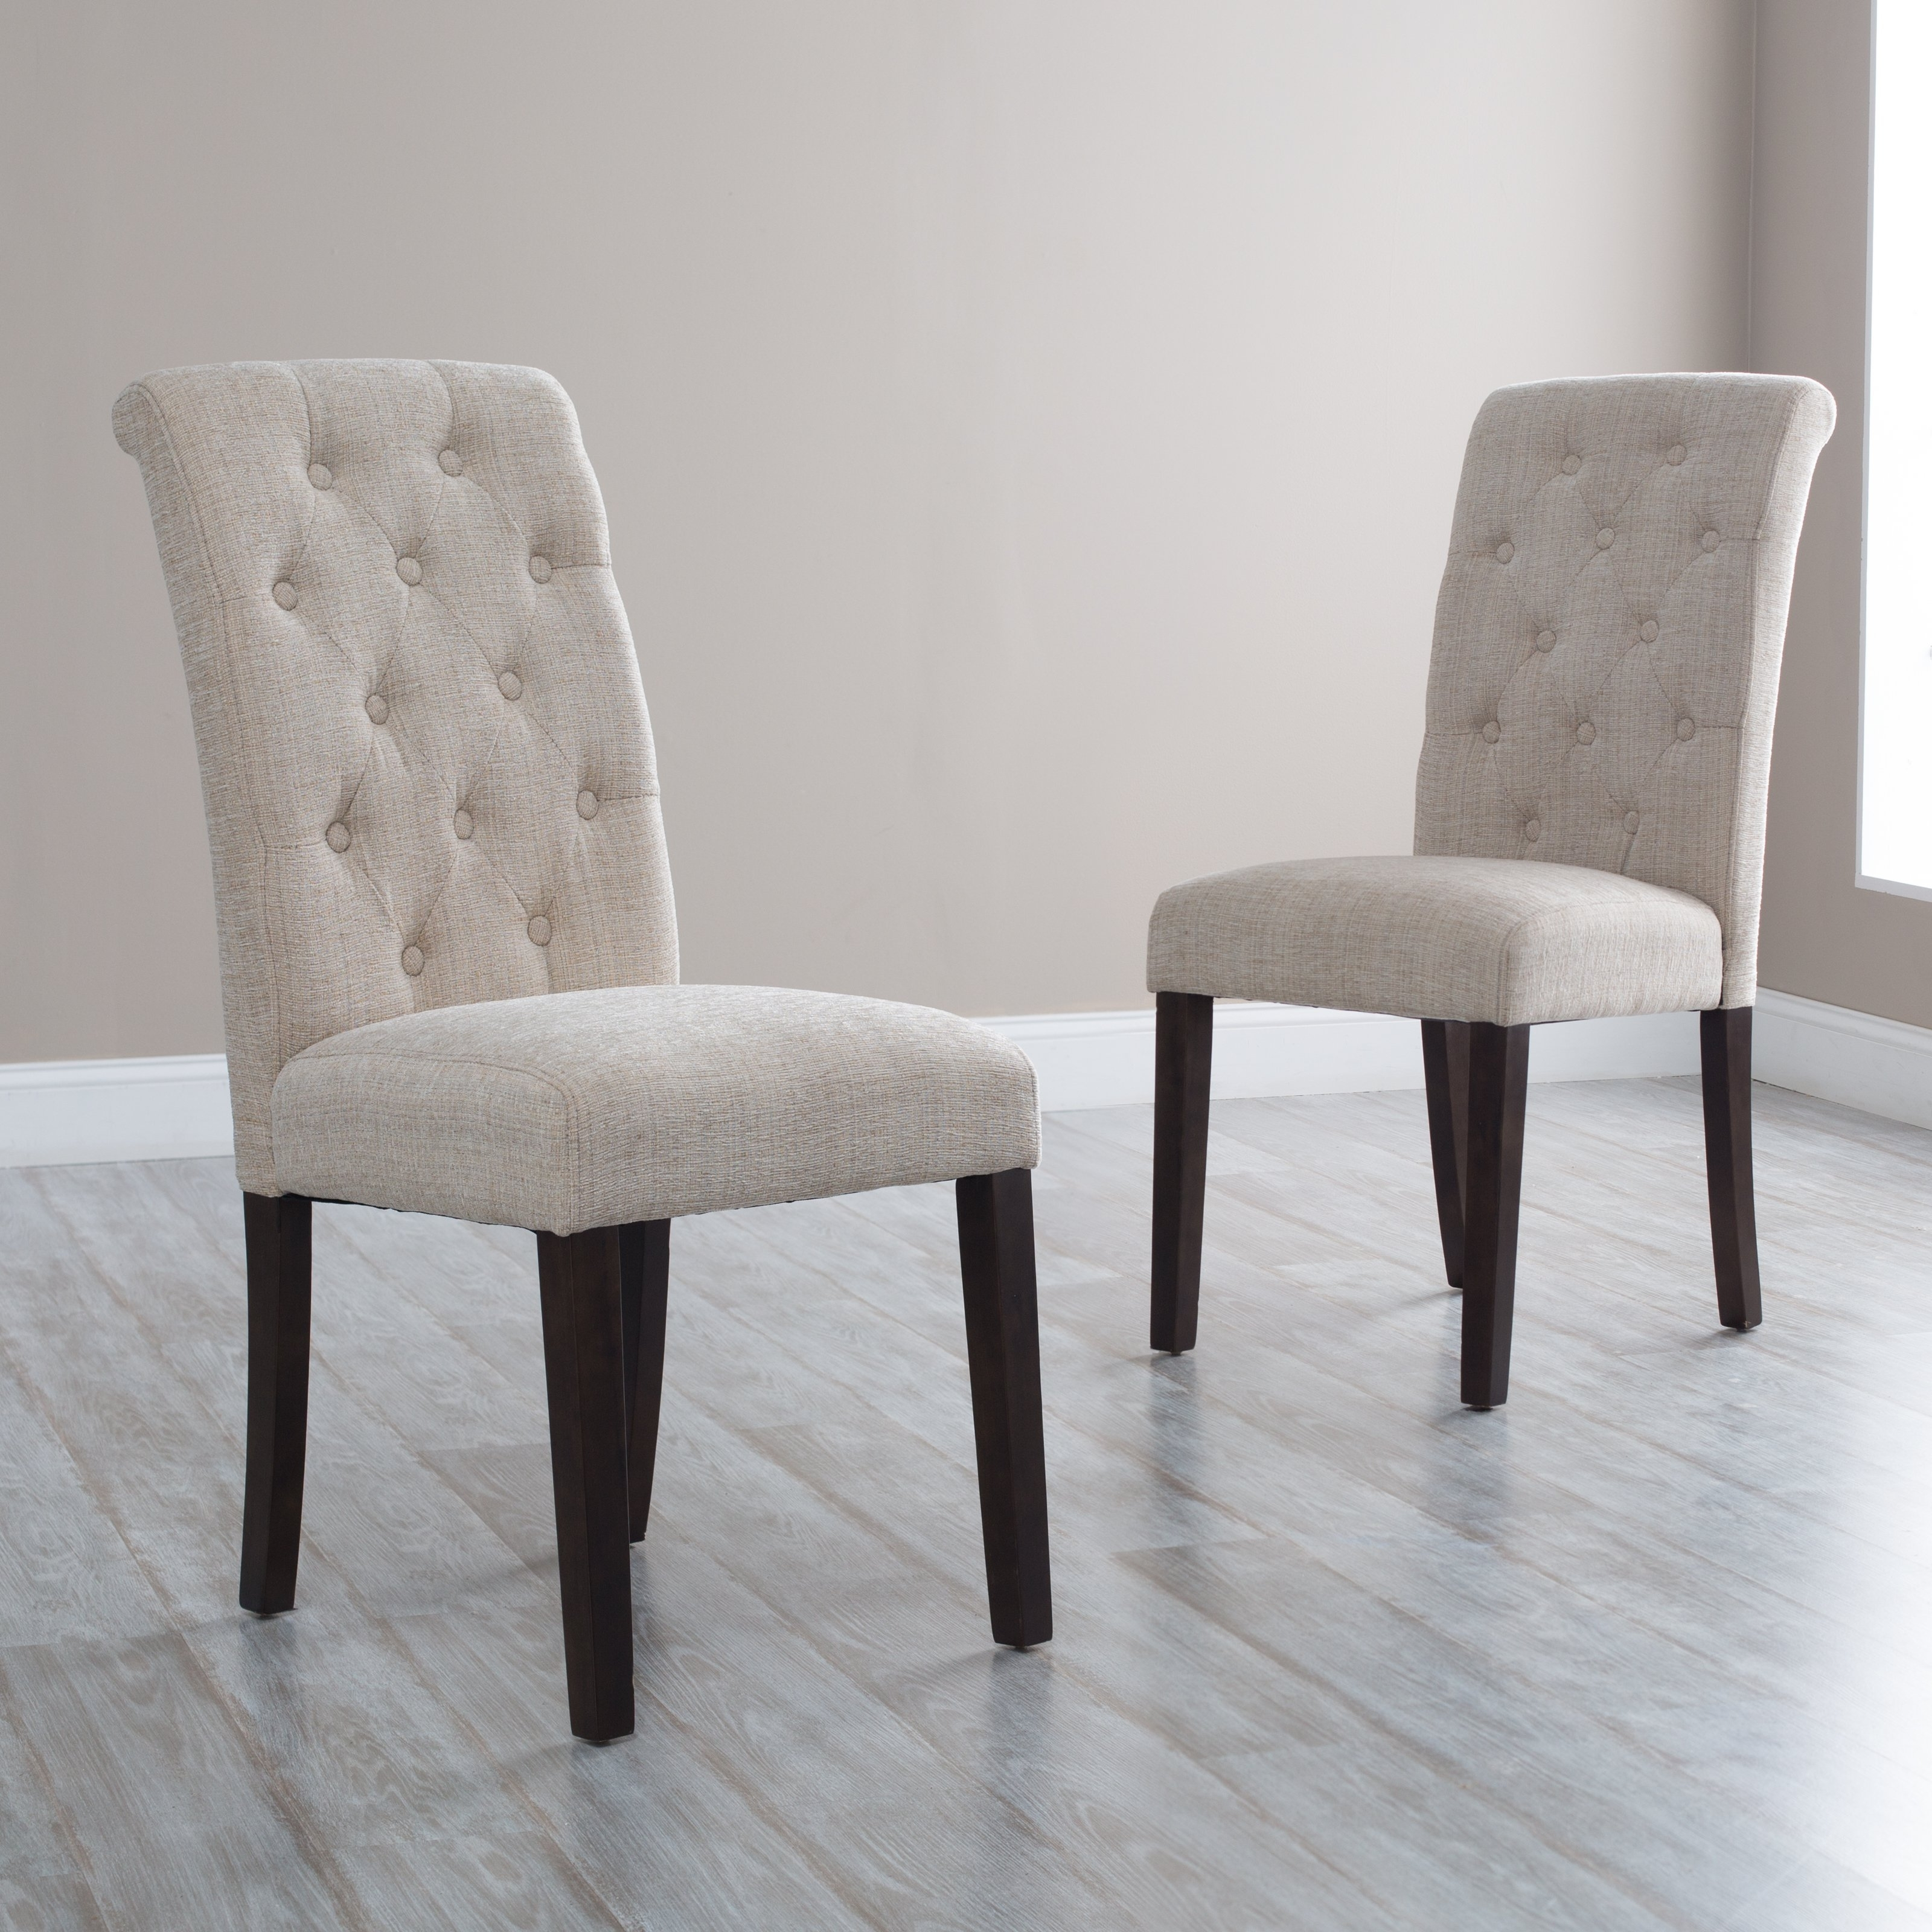 What You Need To Know About Dinette Chairs – Elites Home Decor Regarding Popular Dining Room Chairs (View 25 of 25)